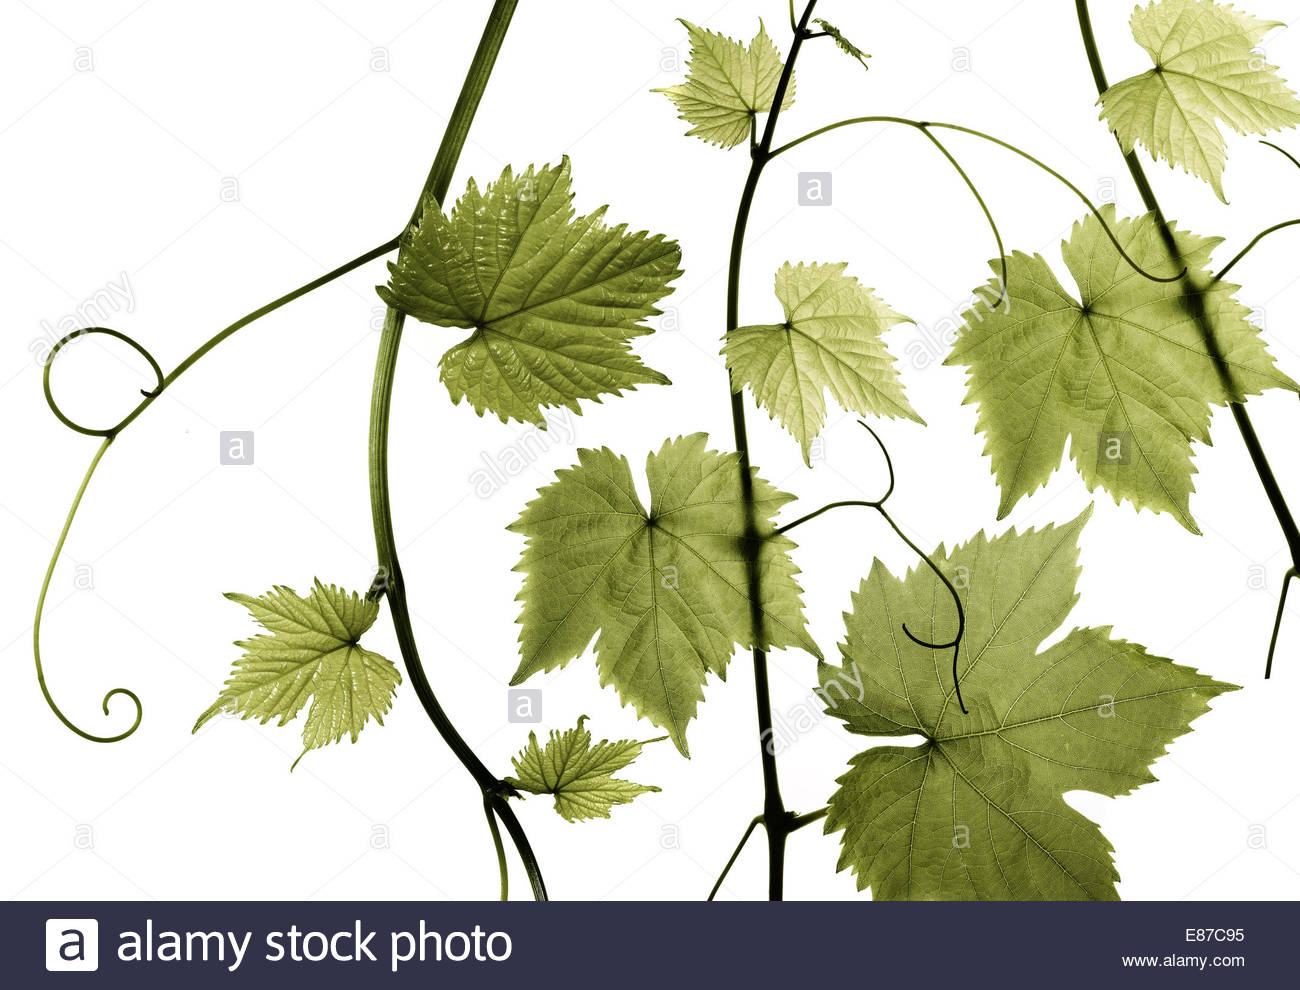 Fresh Grape Vine branch twig leaves on white background - Stock Image